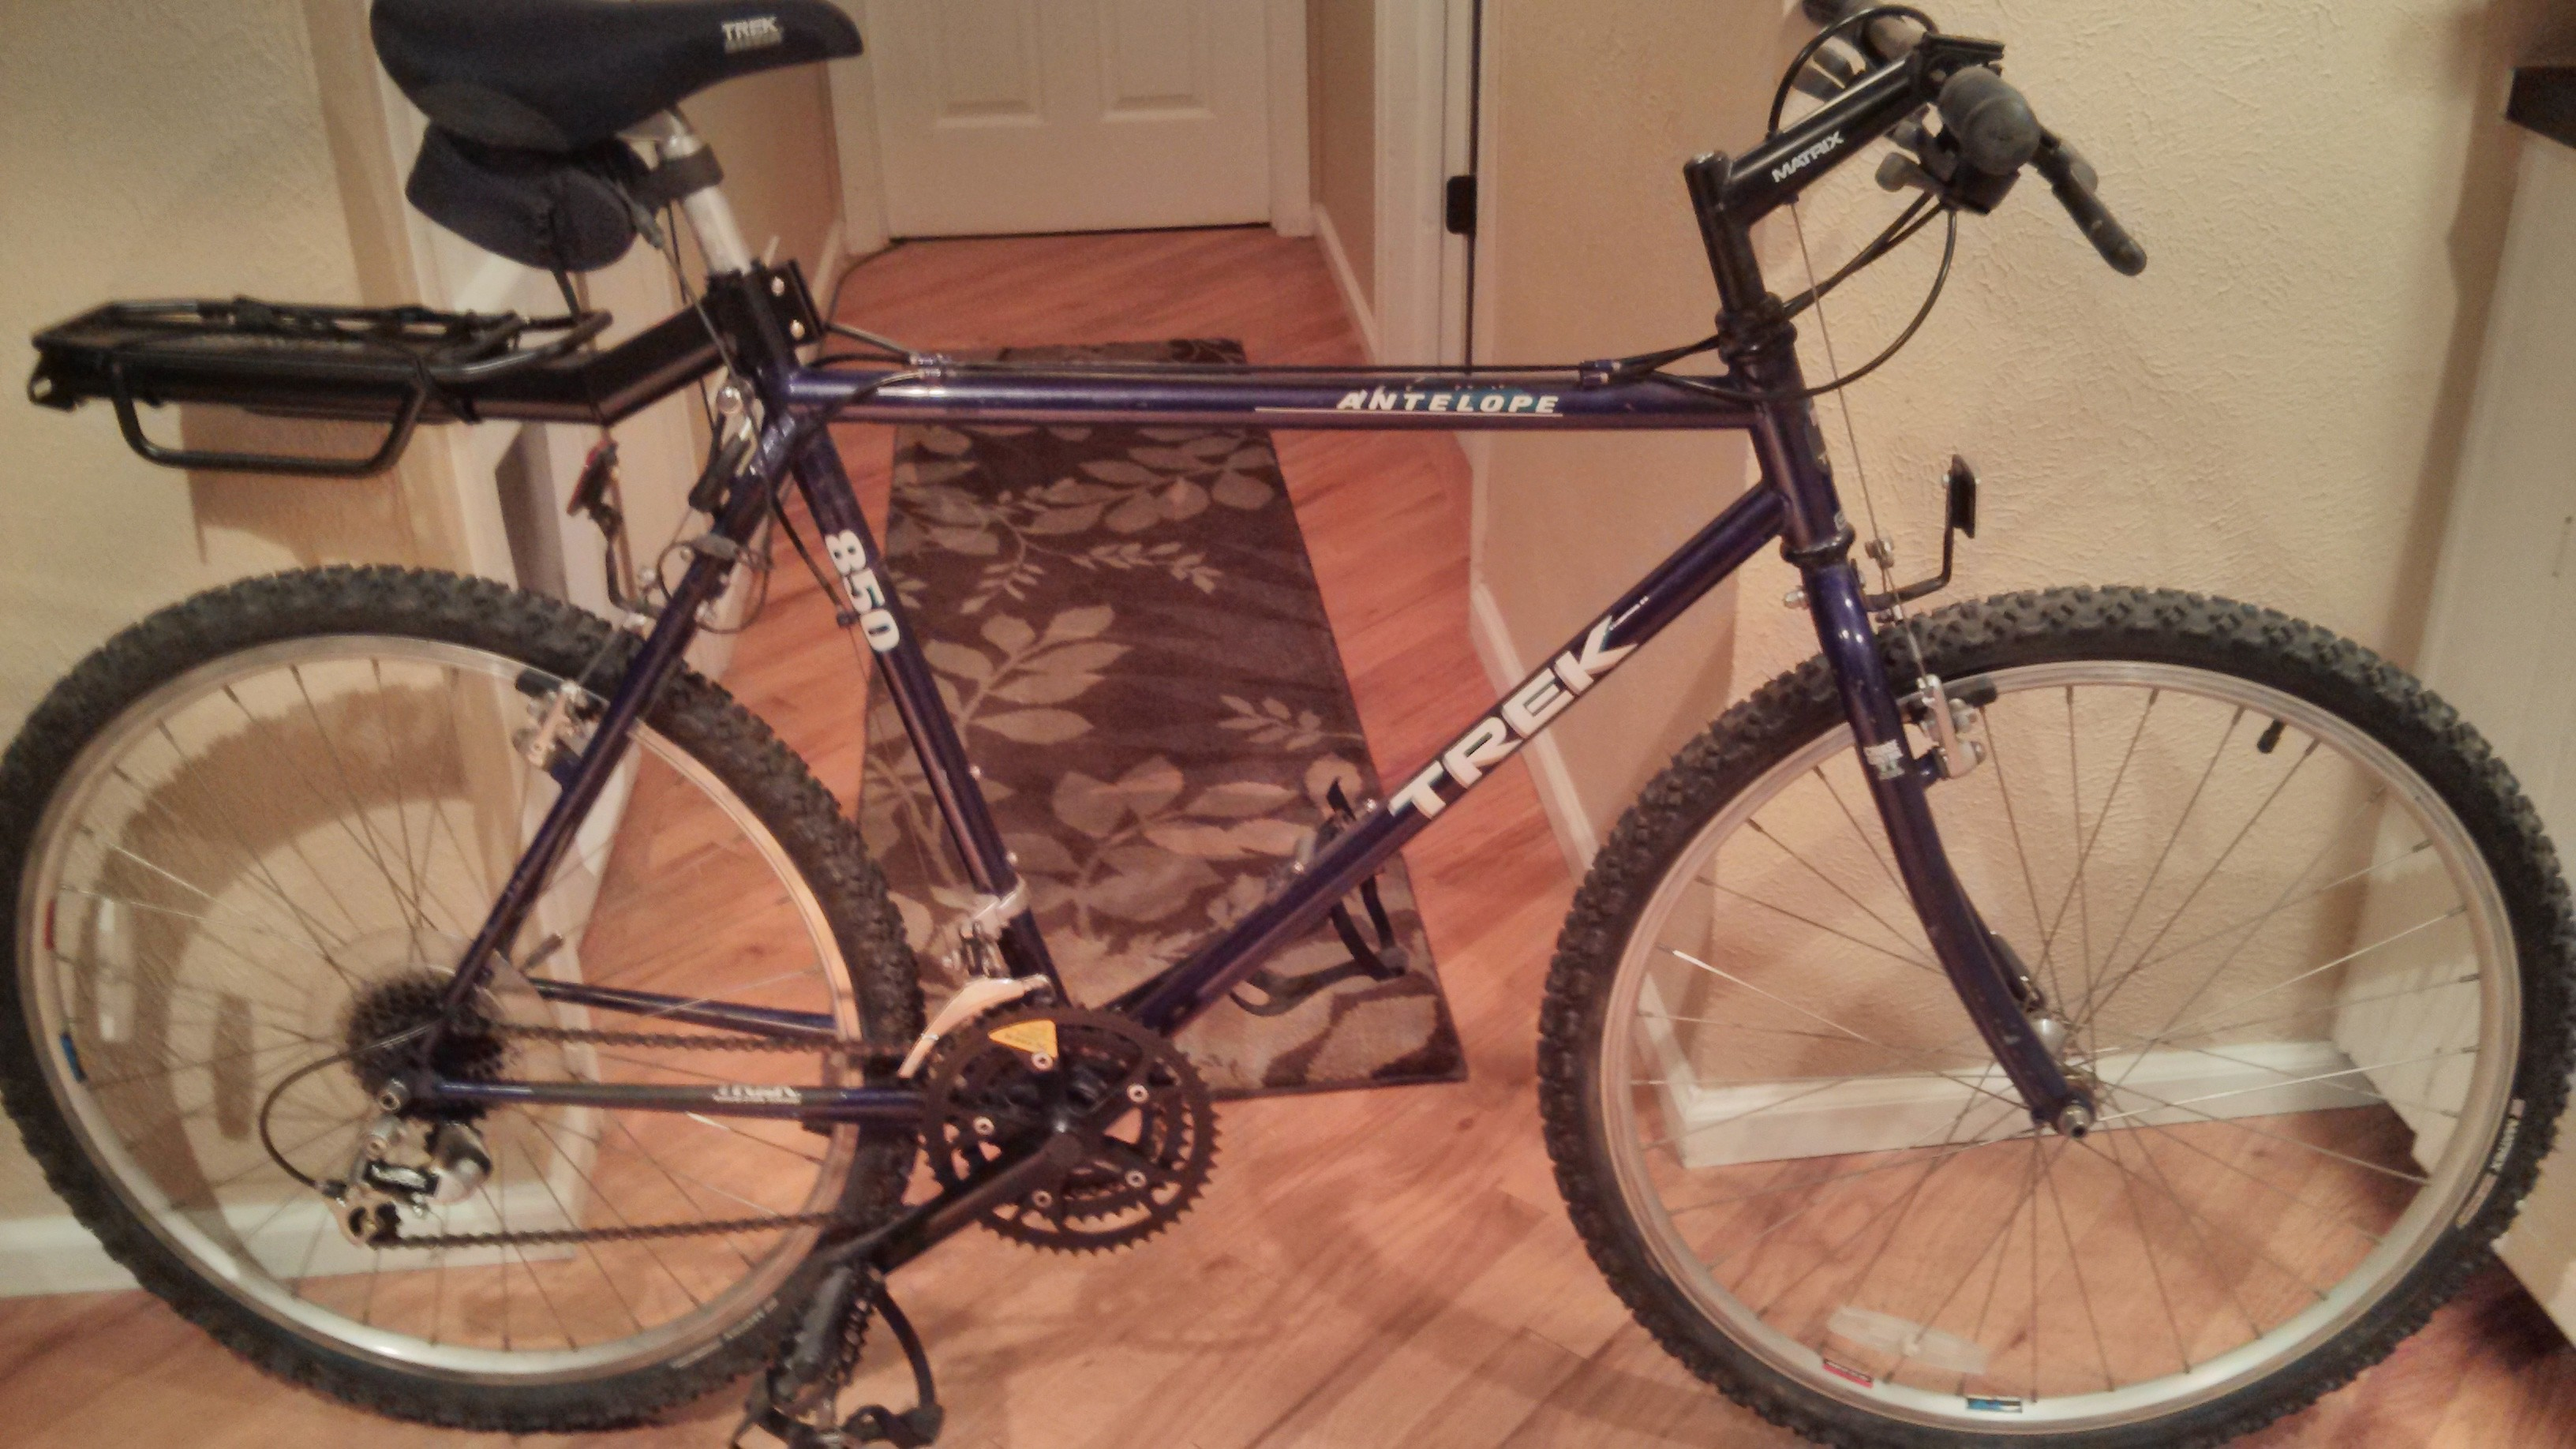 1992 Trek 850 starting point.